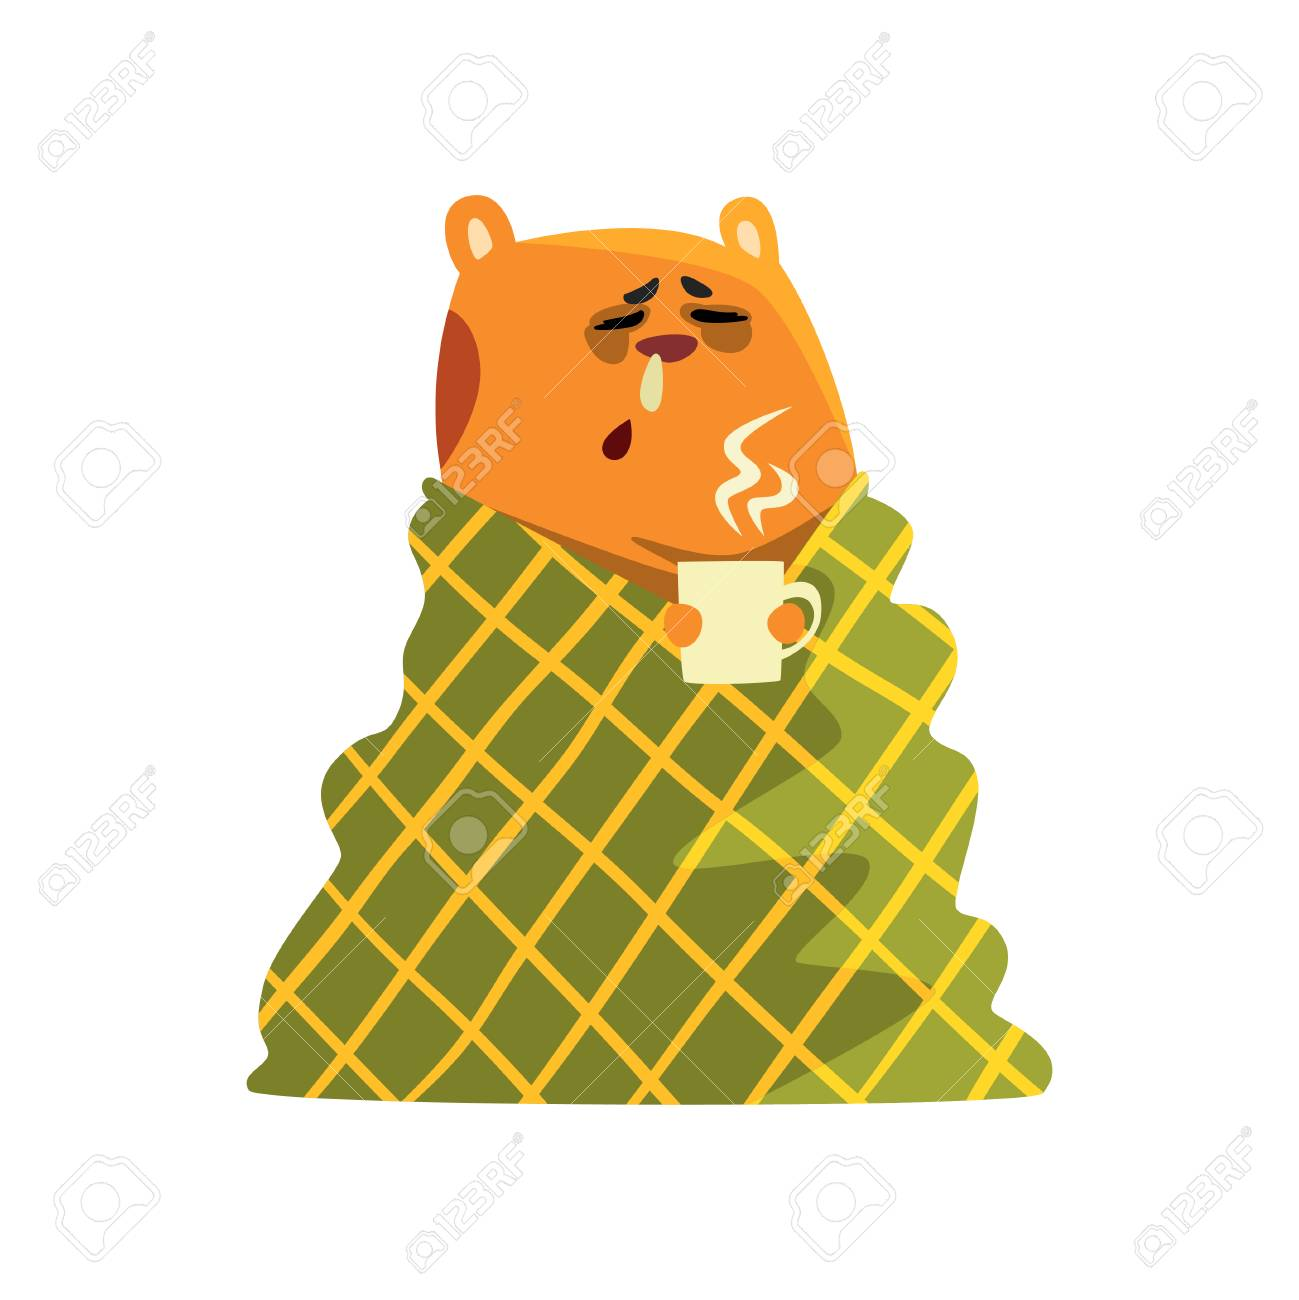 Sick Cartoon Hamster Character With Flu Wrapped In A Blanket Royalty Free Cliparts Vectors And Stock Illustration Image 102384622